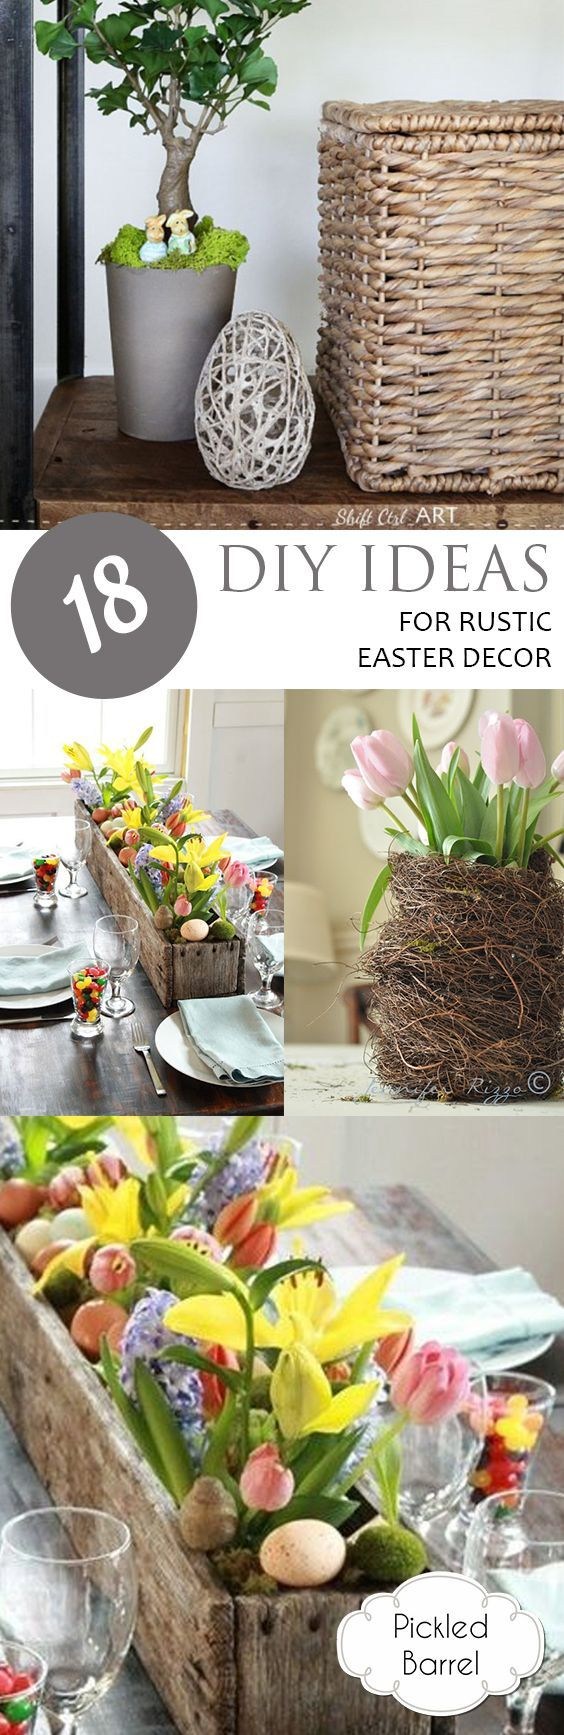 18 DIY Ideas for Rustic Easter Decor